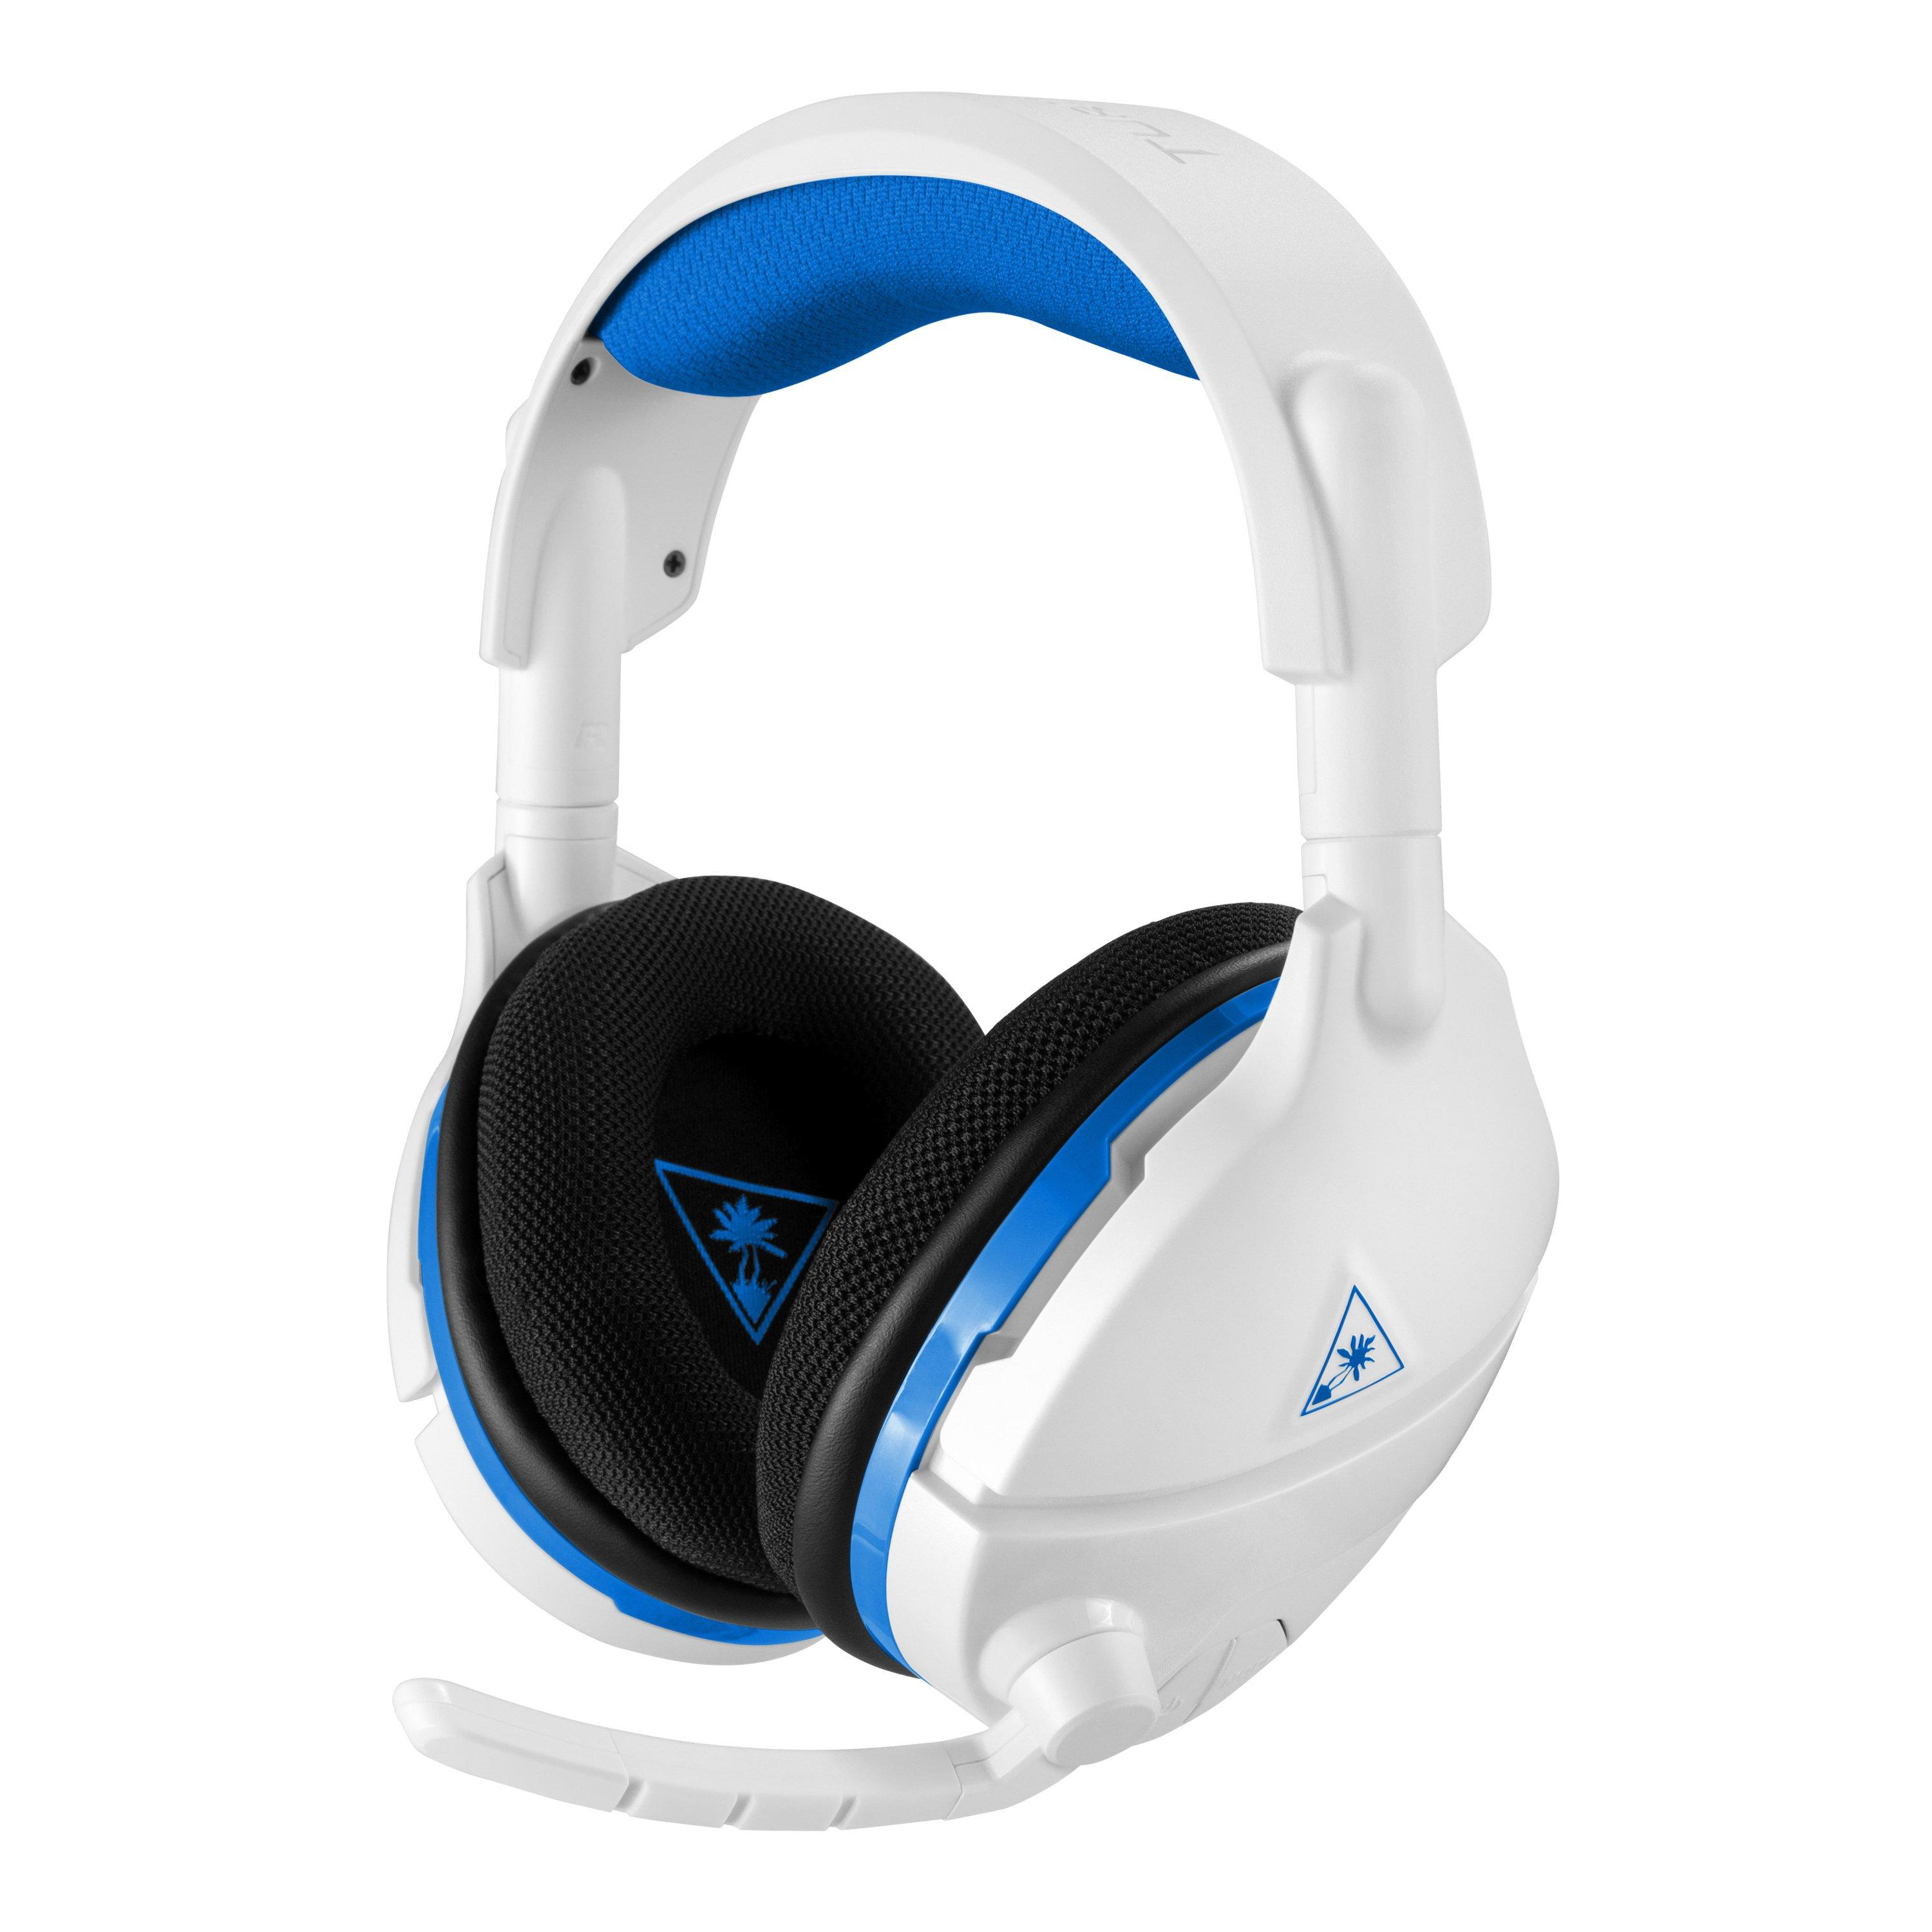 Stealth 600 White Wireless Gaming Headset Playstation 4